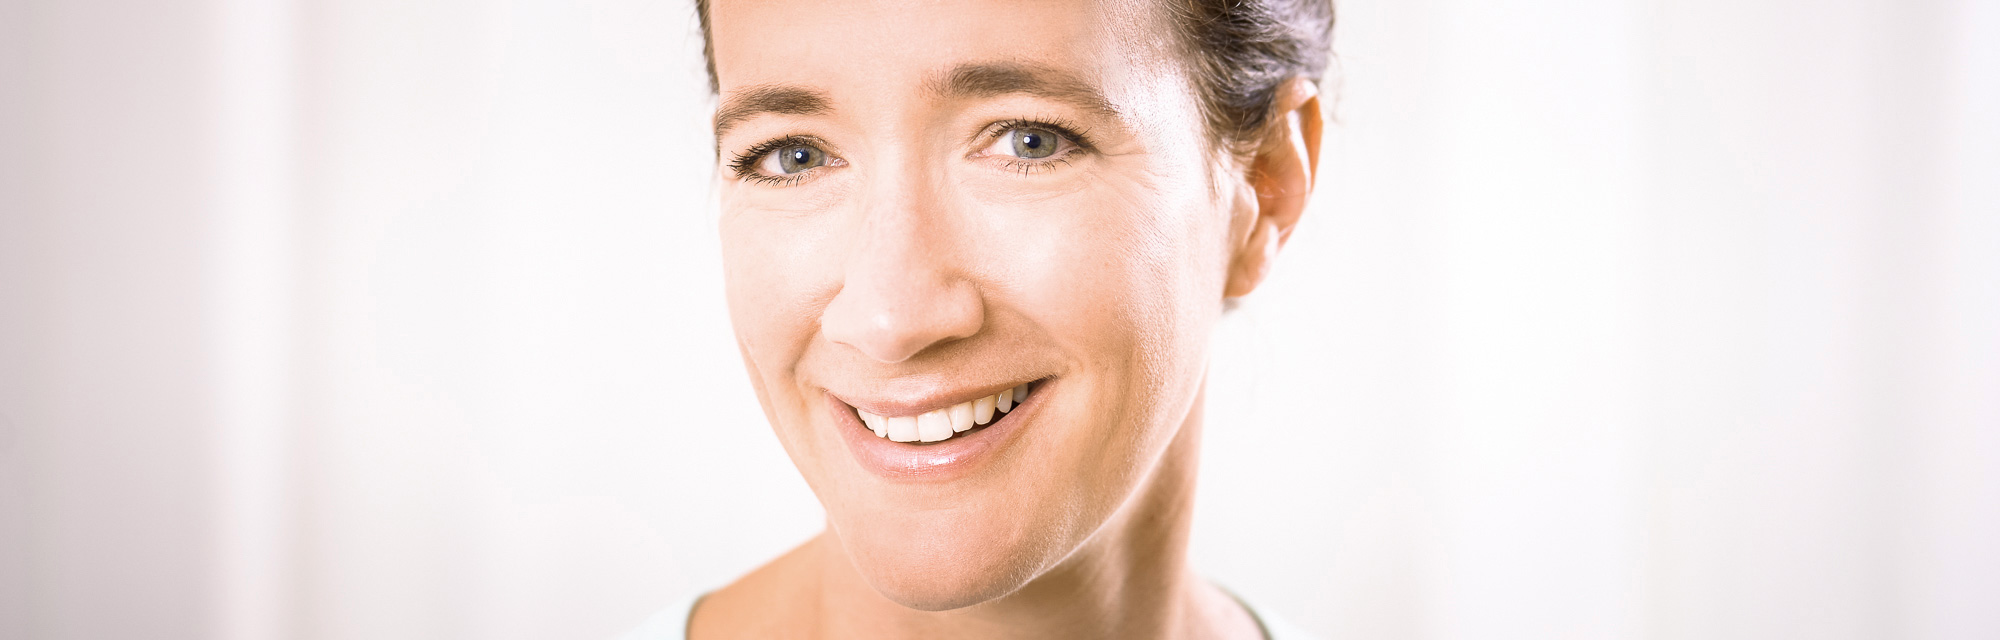 Annette Prahm, Physiotherapie und Pilates in Hamburg